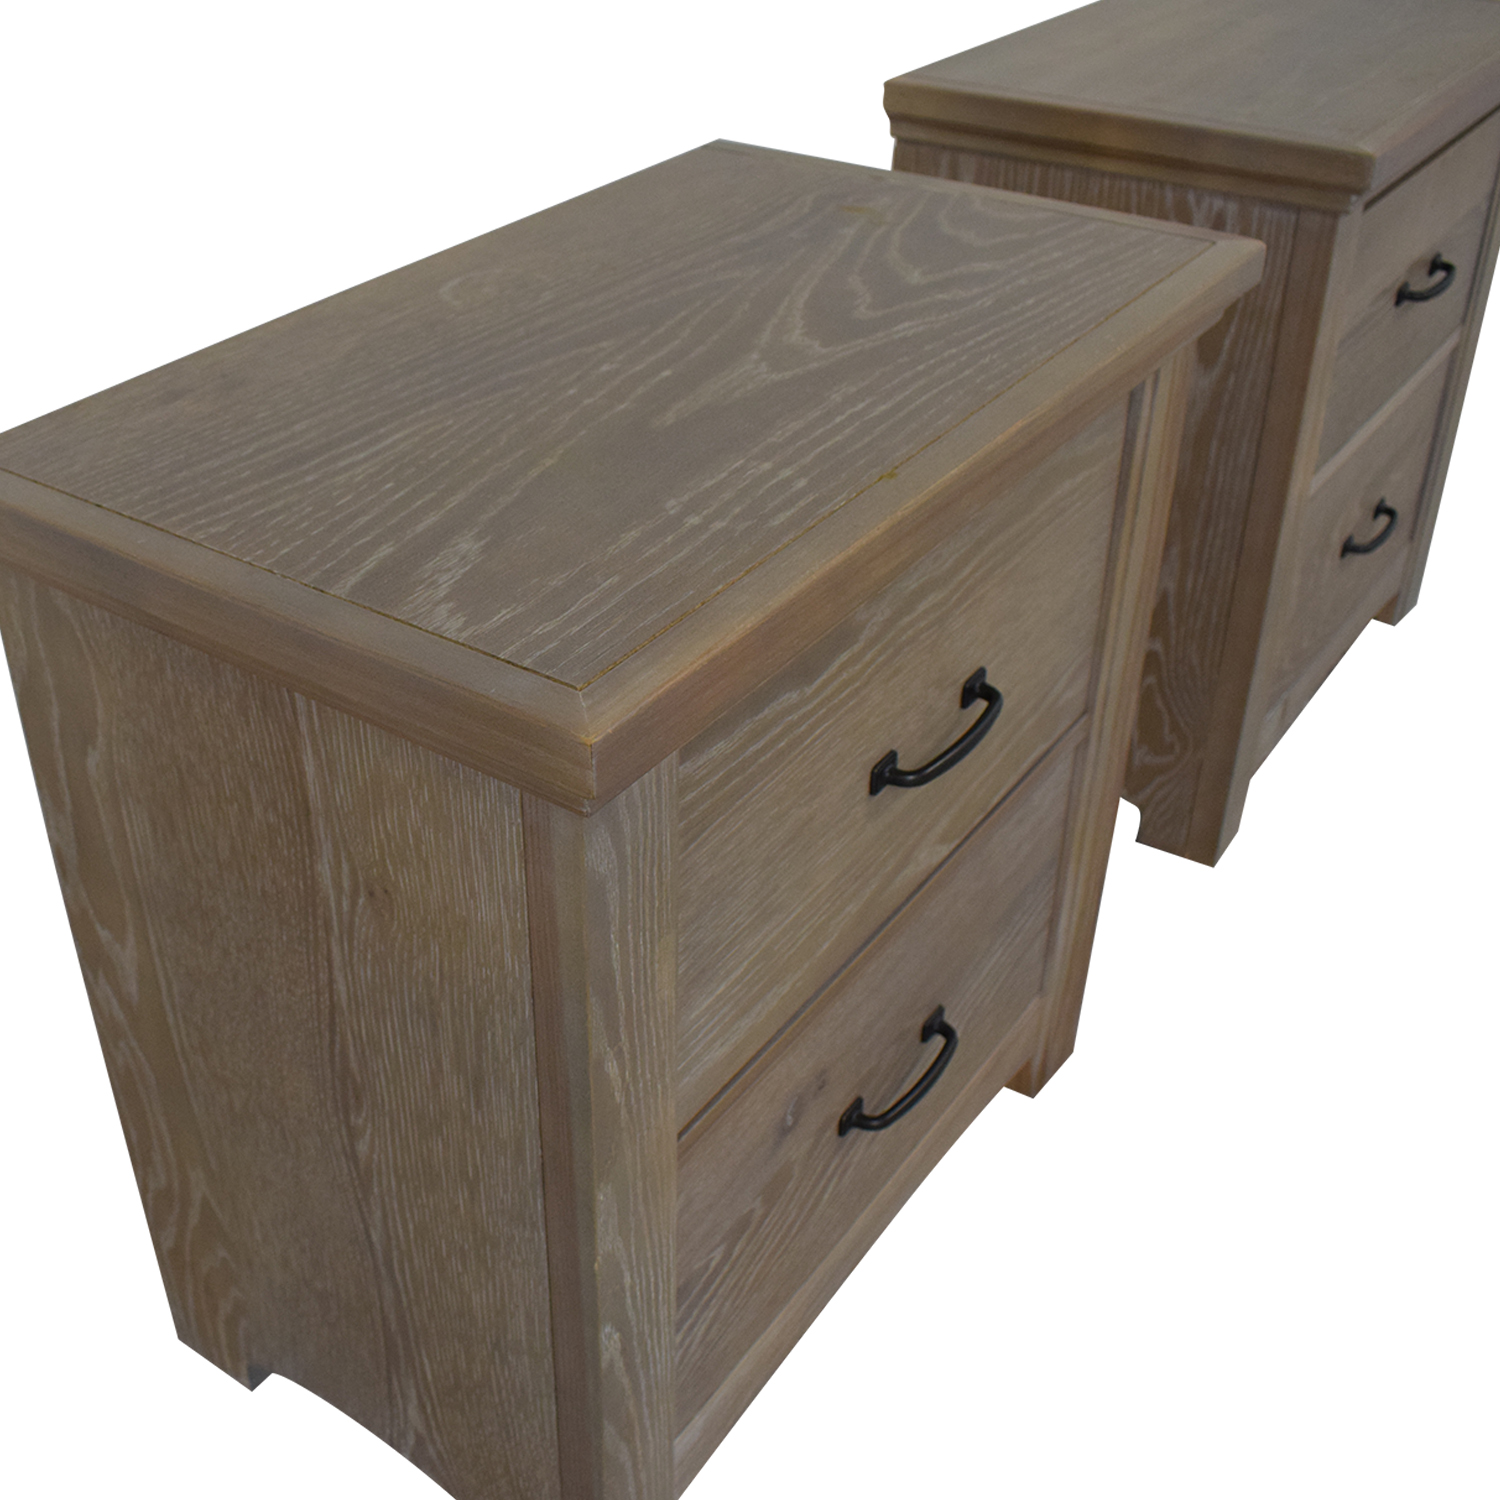 shop Vaughan-Basset Transitions Two Drawer Nightstands Vaughan-Bassett